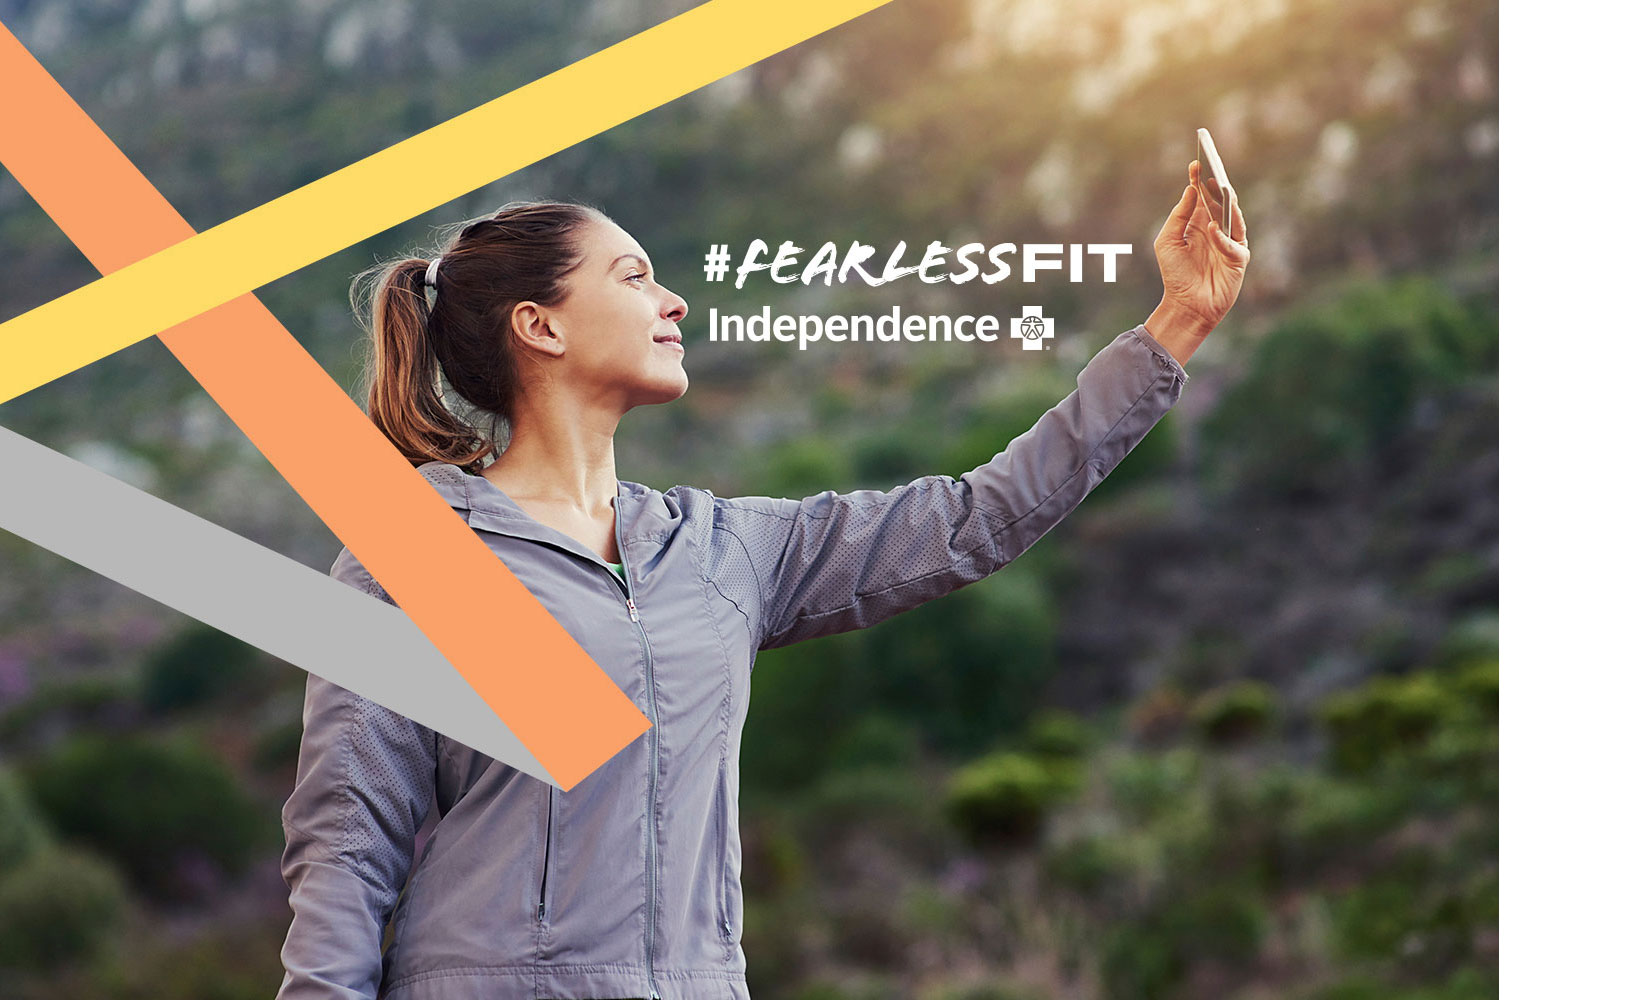 #fearlessfit photo contest